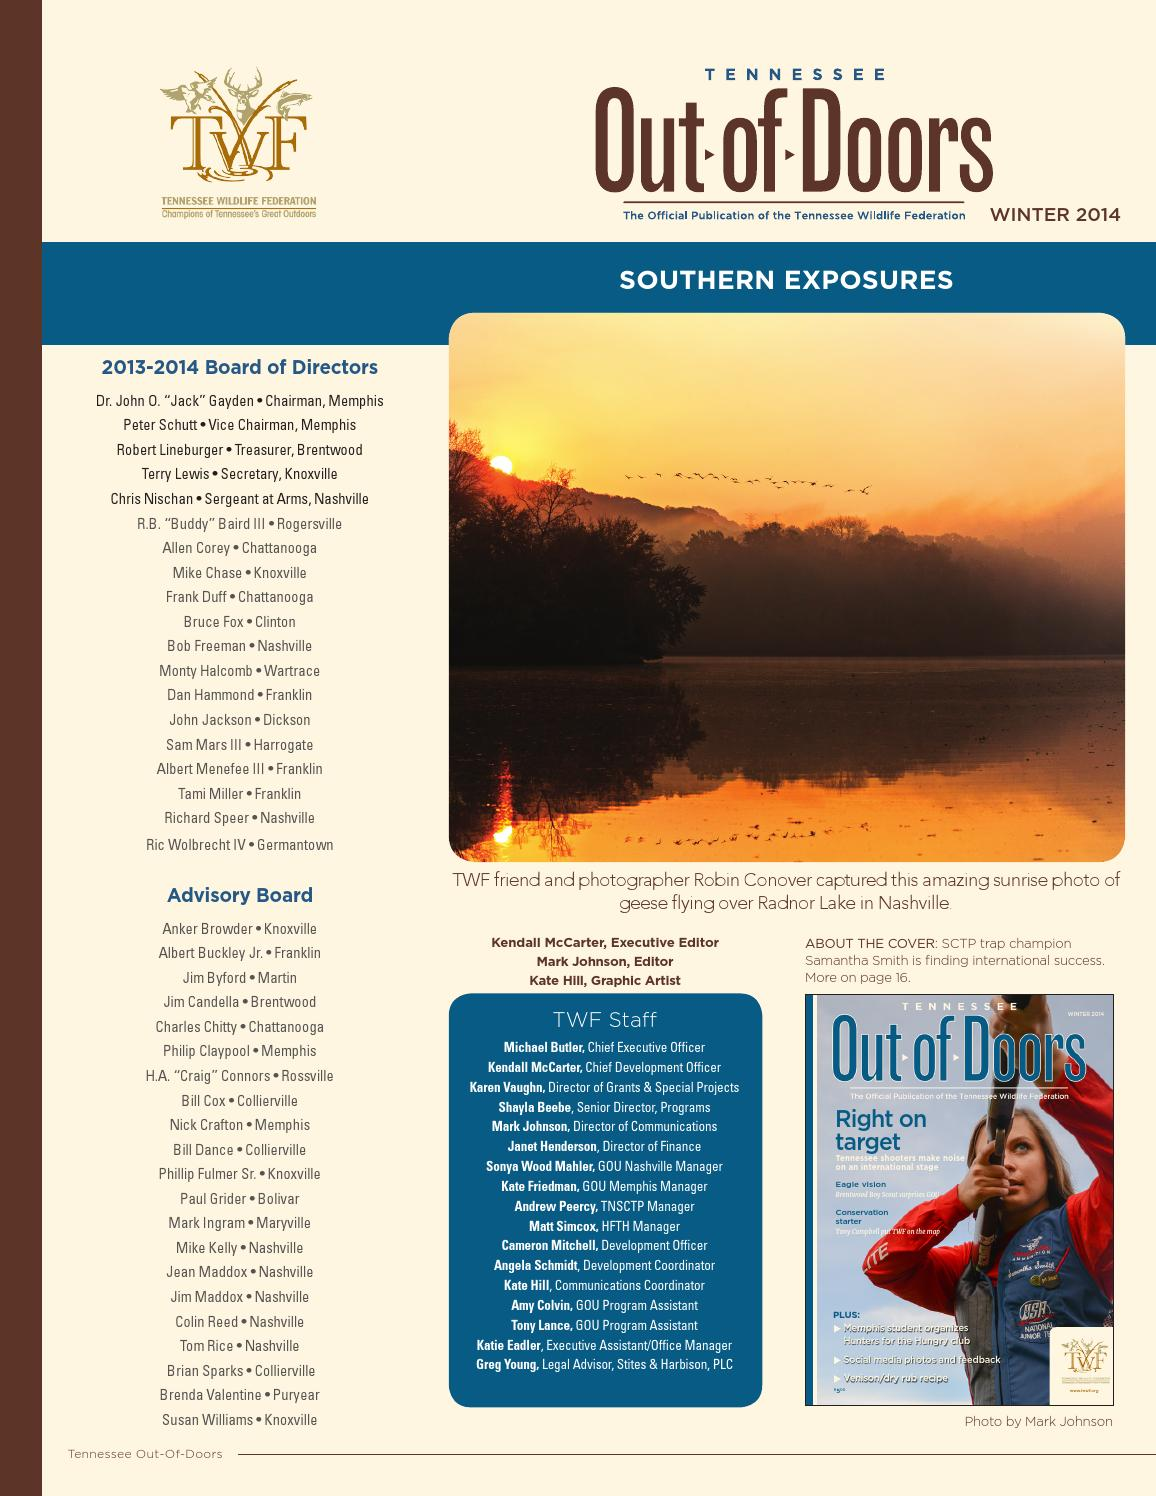 Tennessee Out-Of-Doors Winter 2014 by Tennessee Wildlife Federation